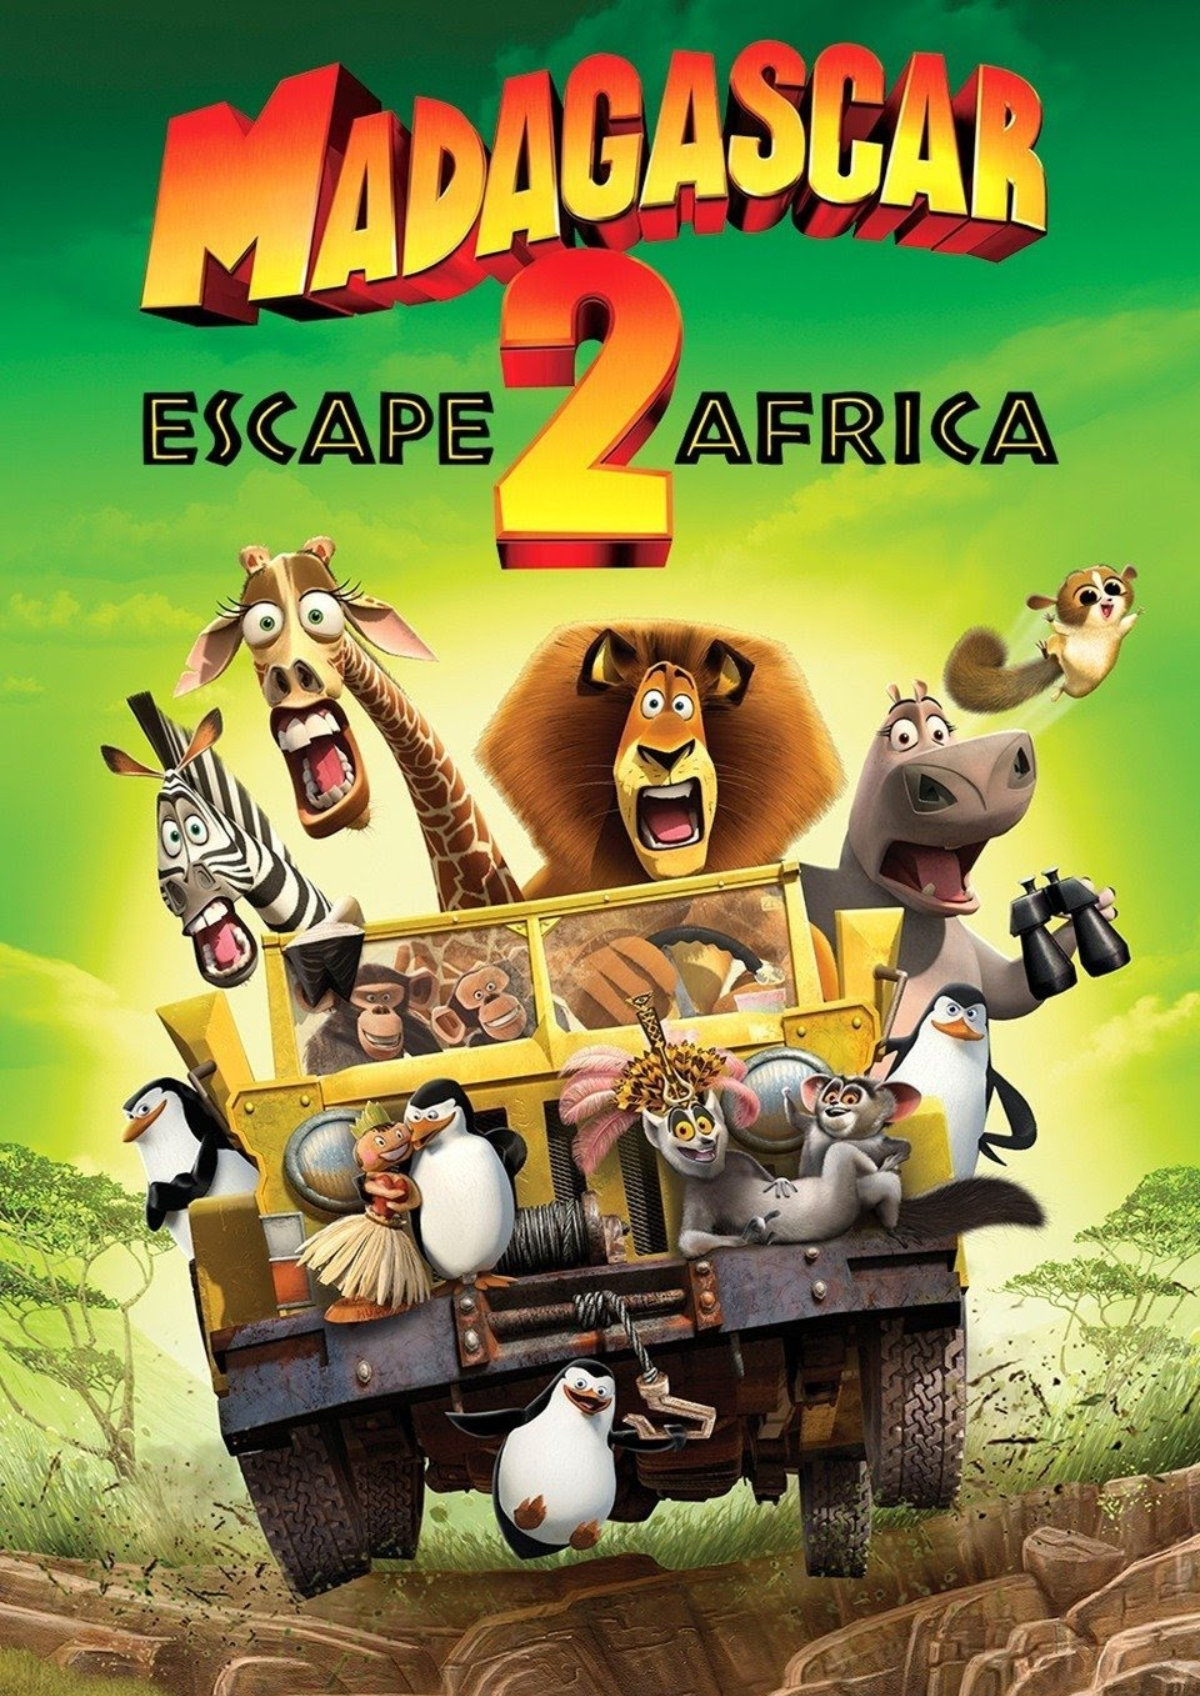 'Madagascar: Escape 2 Africa' movie poster